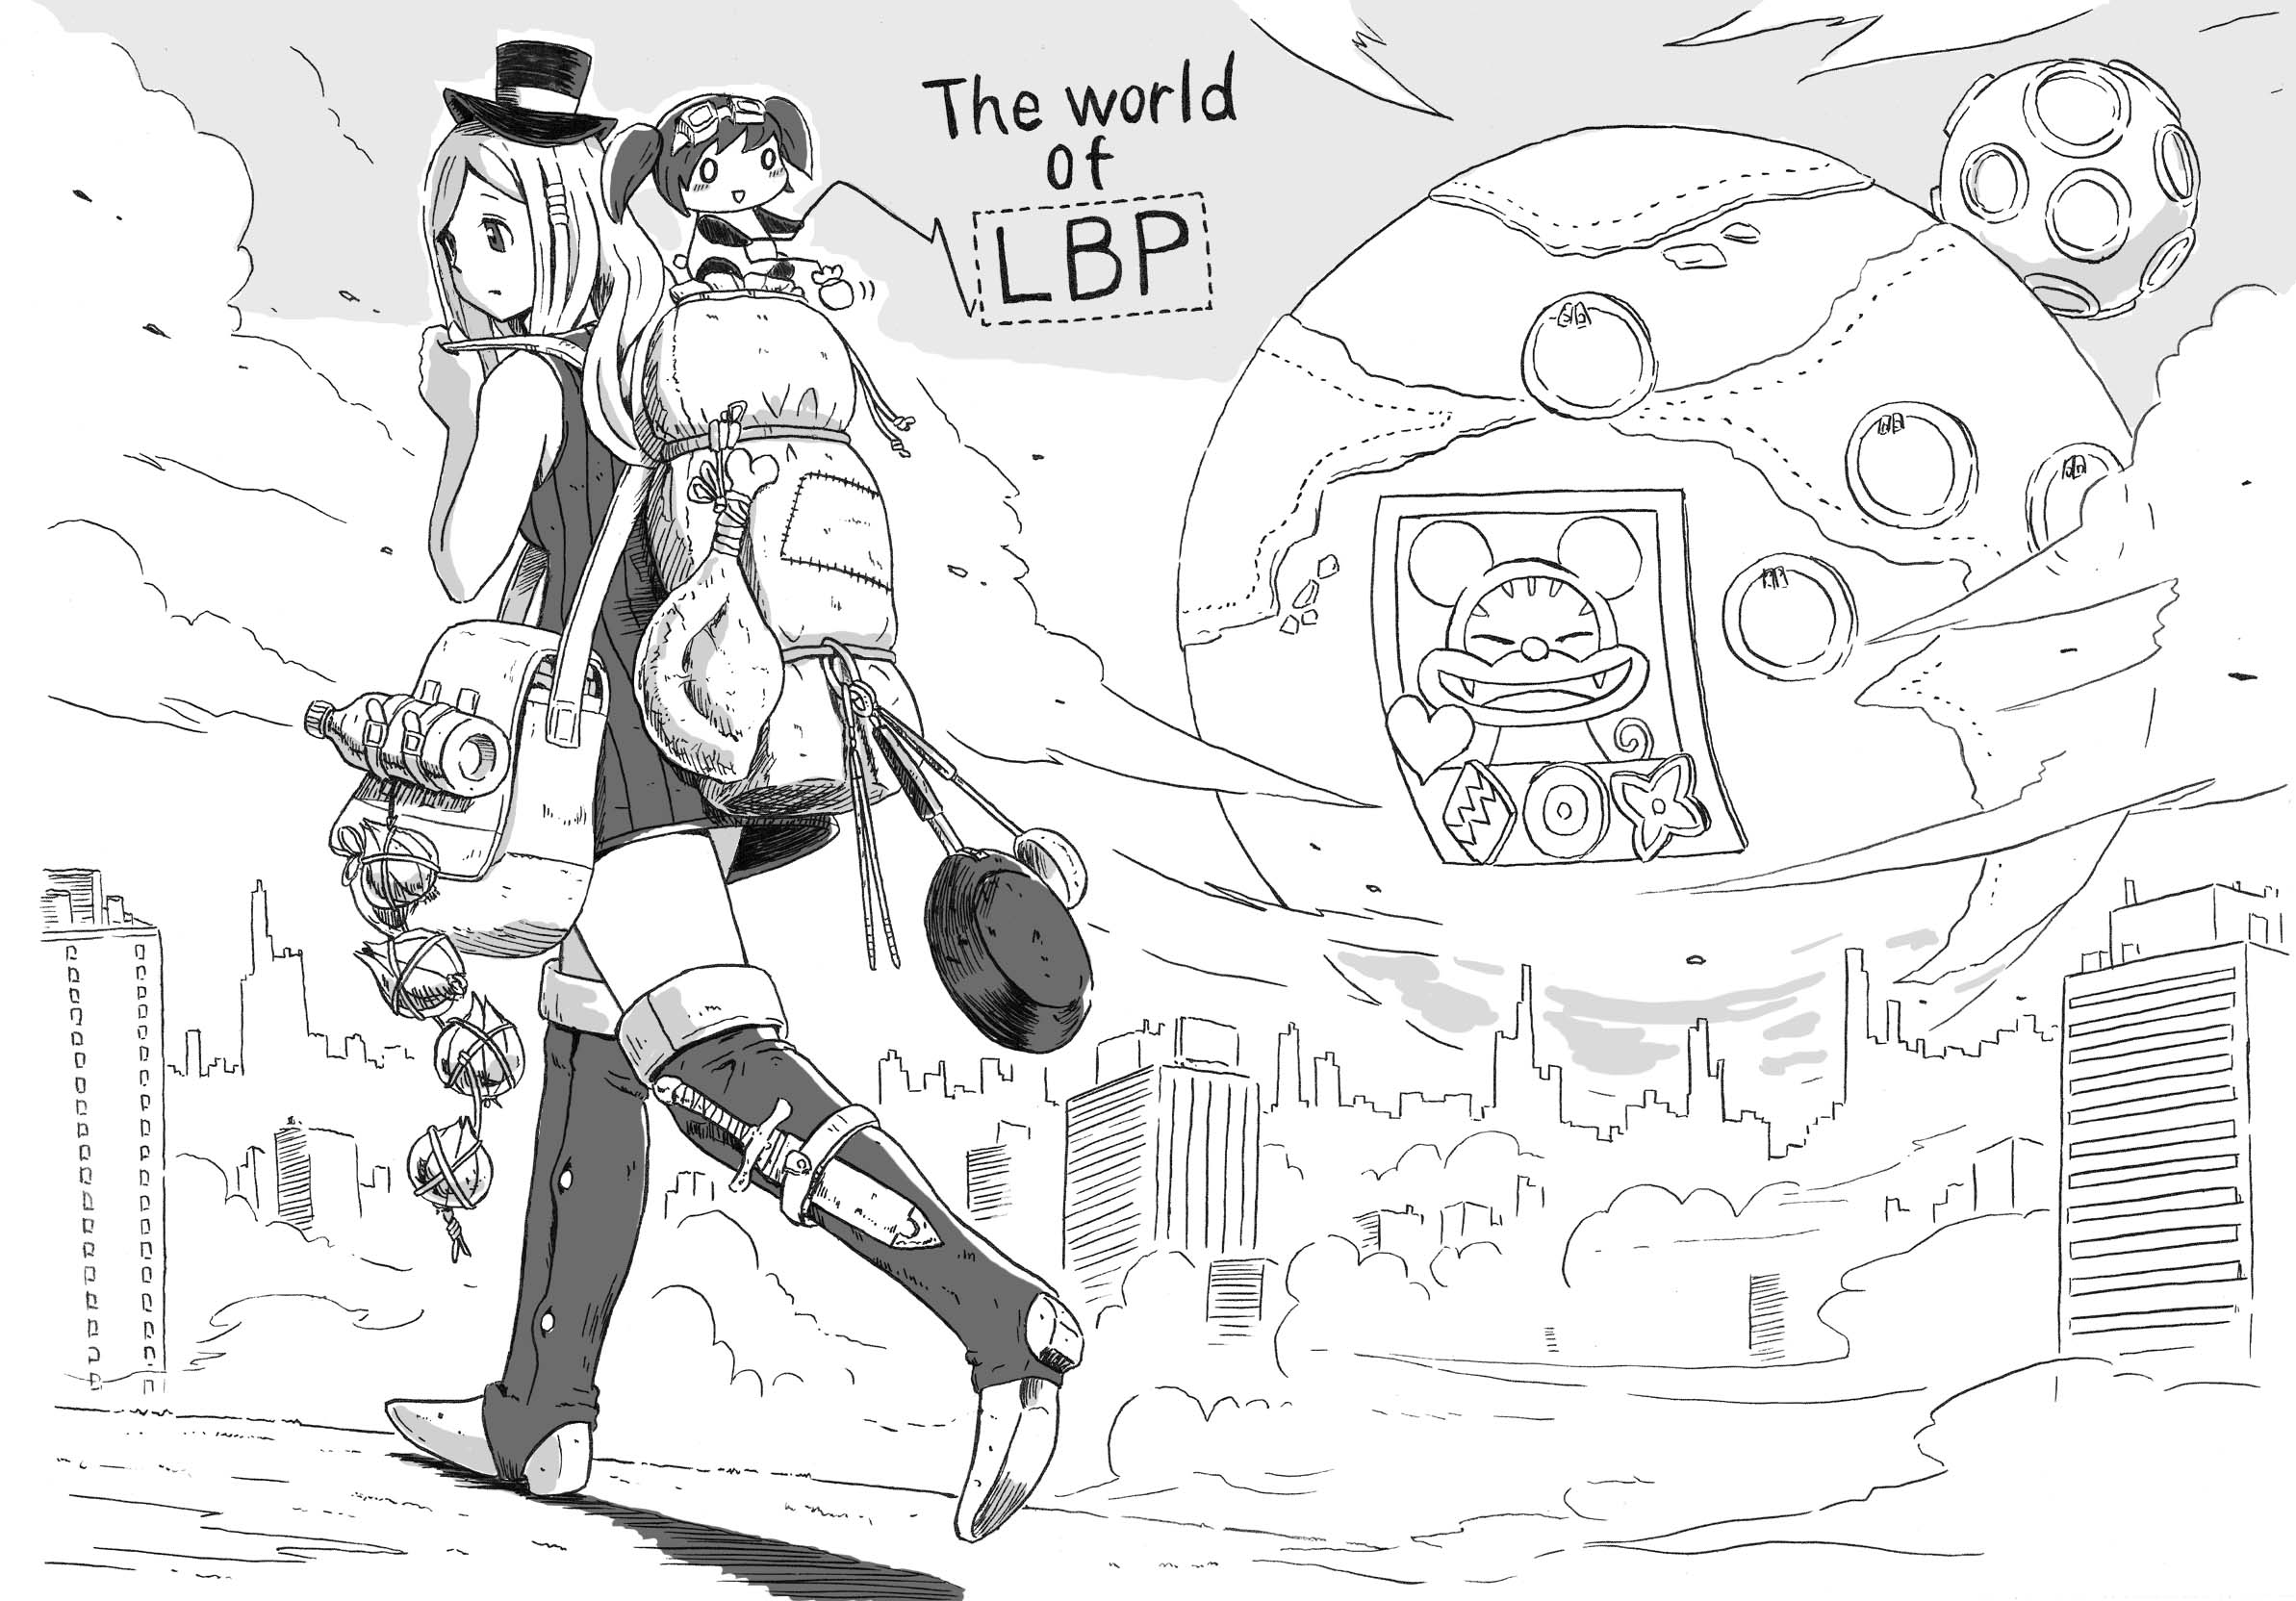 World of LBP